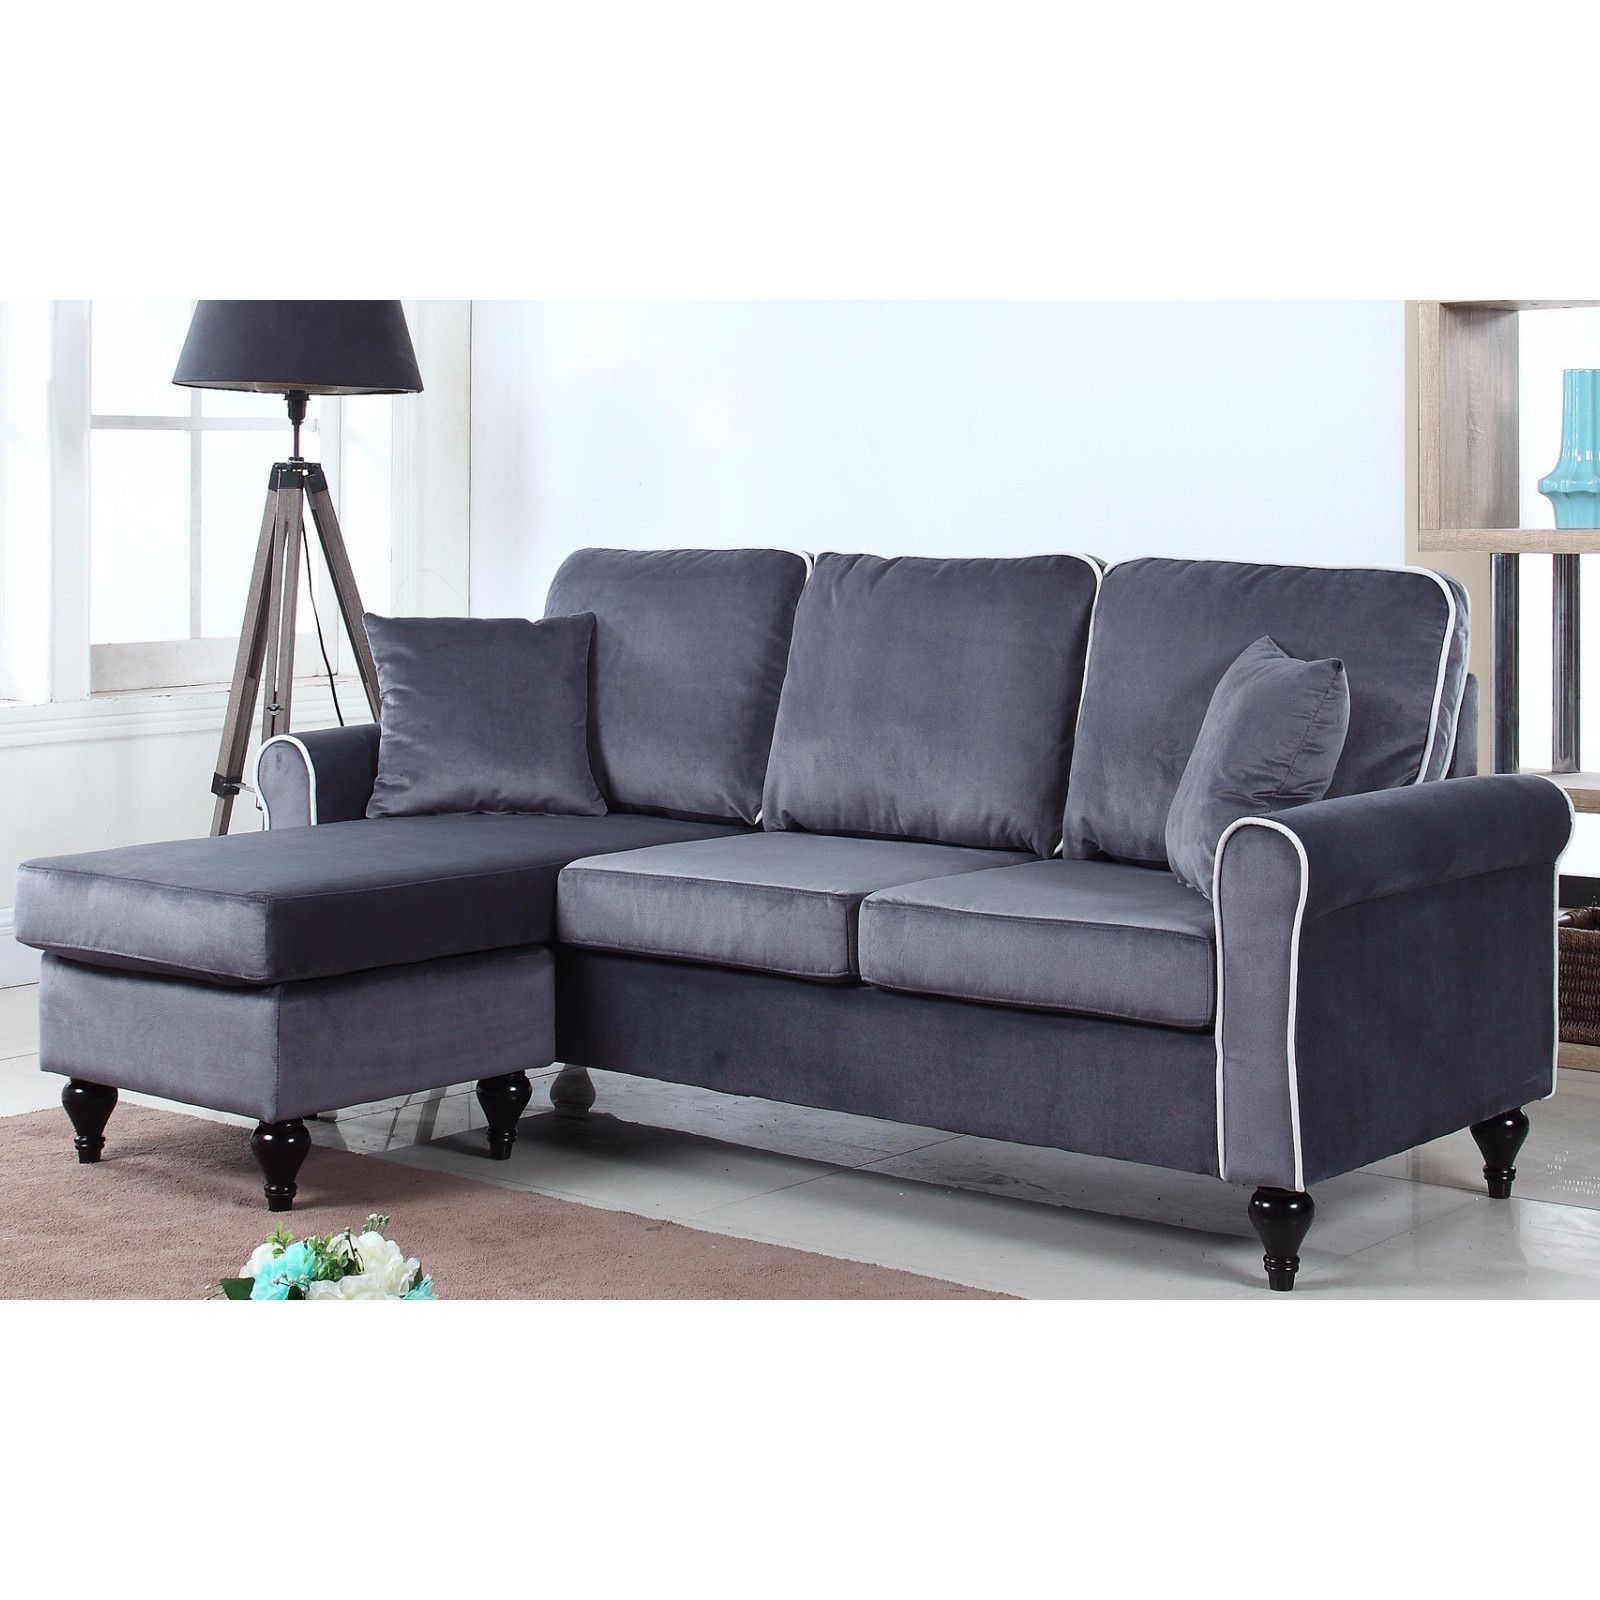 Traditional Small Space Velvet Sectional Sofa With Reversible Chaise Small Sectional Sofa Sectional Sofa Small Sectional Couch